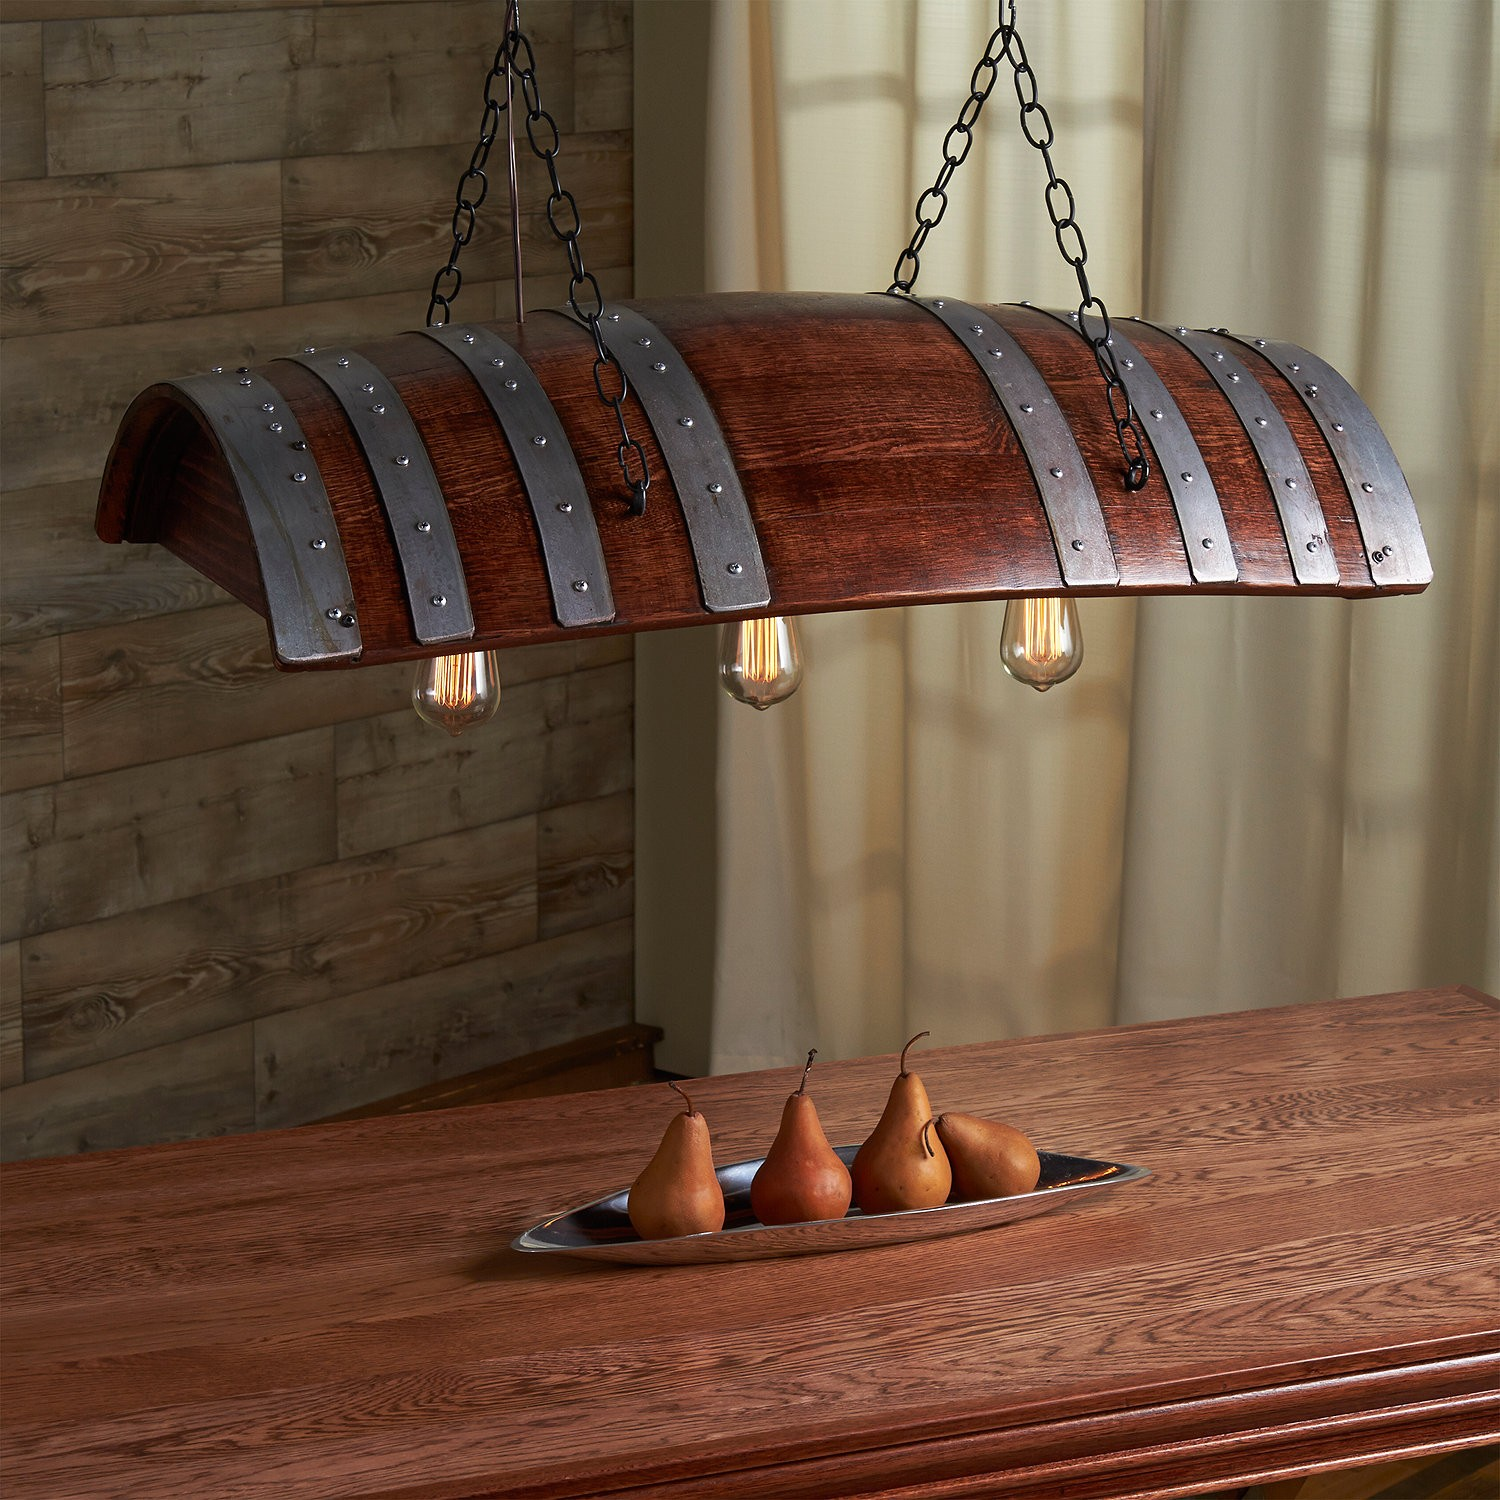 10 Amazing Wine Barrel Chandelier Designs